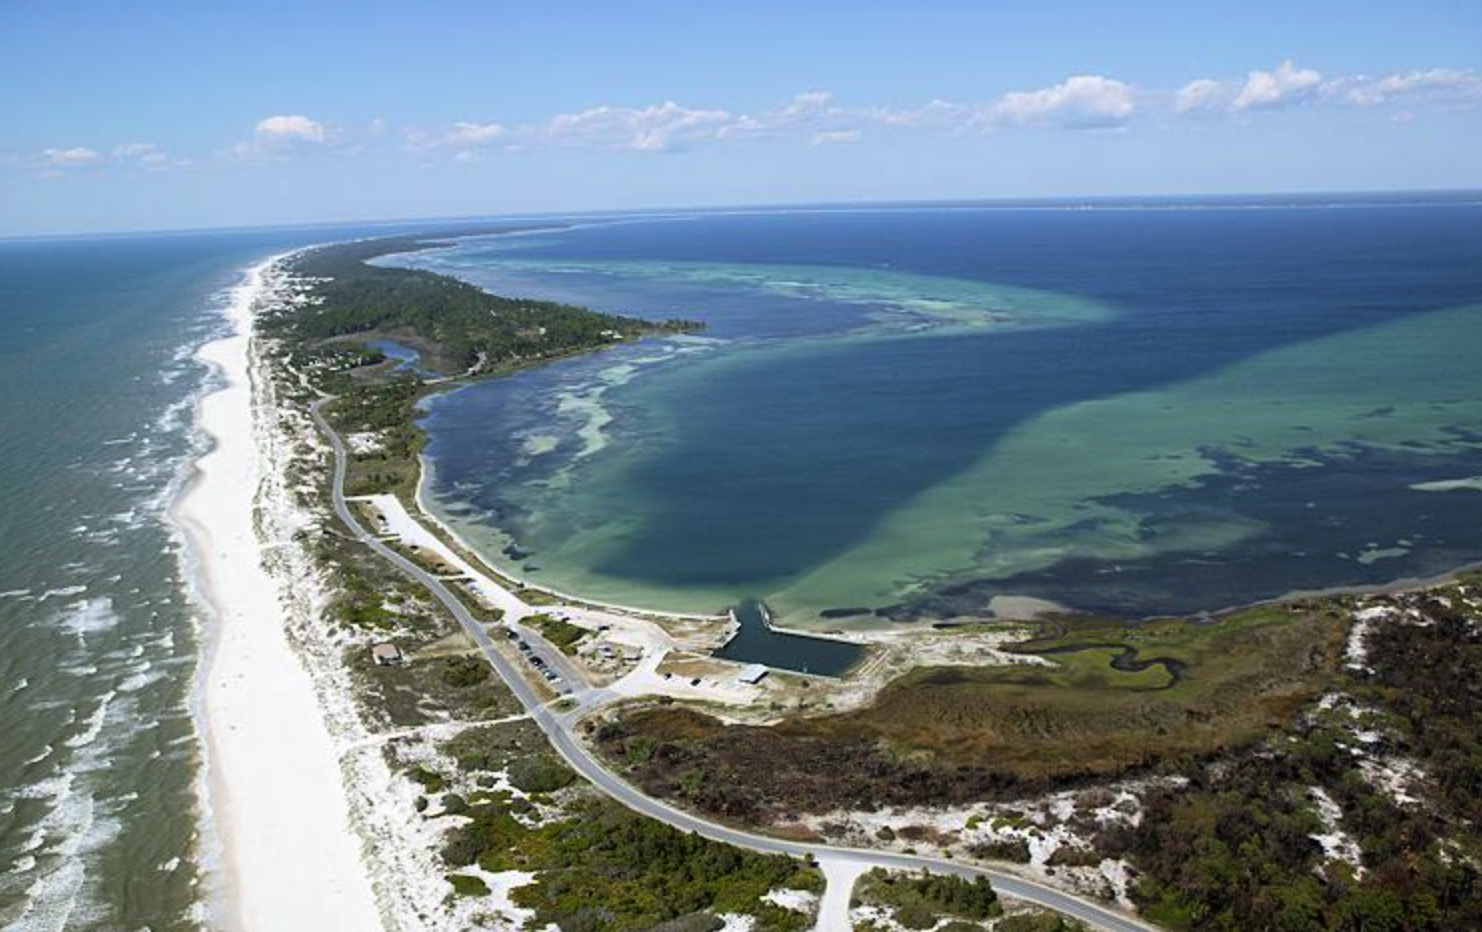 View of the Cape San Blas peninsula which contains the State Park at the northern tip.